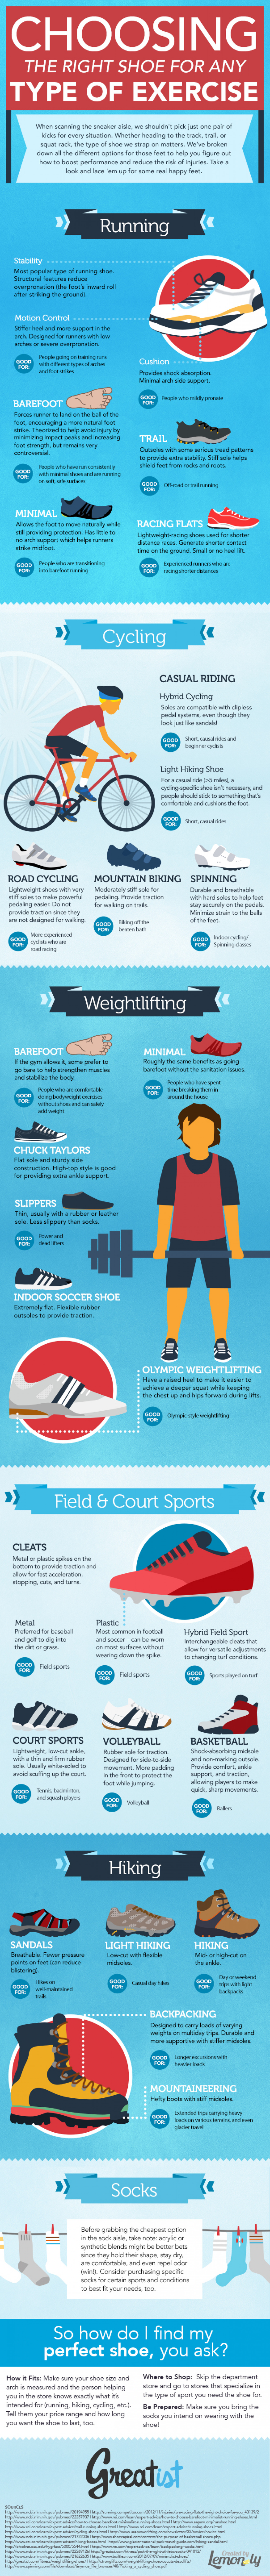 Choosing the Right Shoe for Any Type of Exercise  Infographic